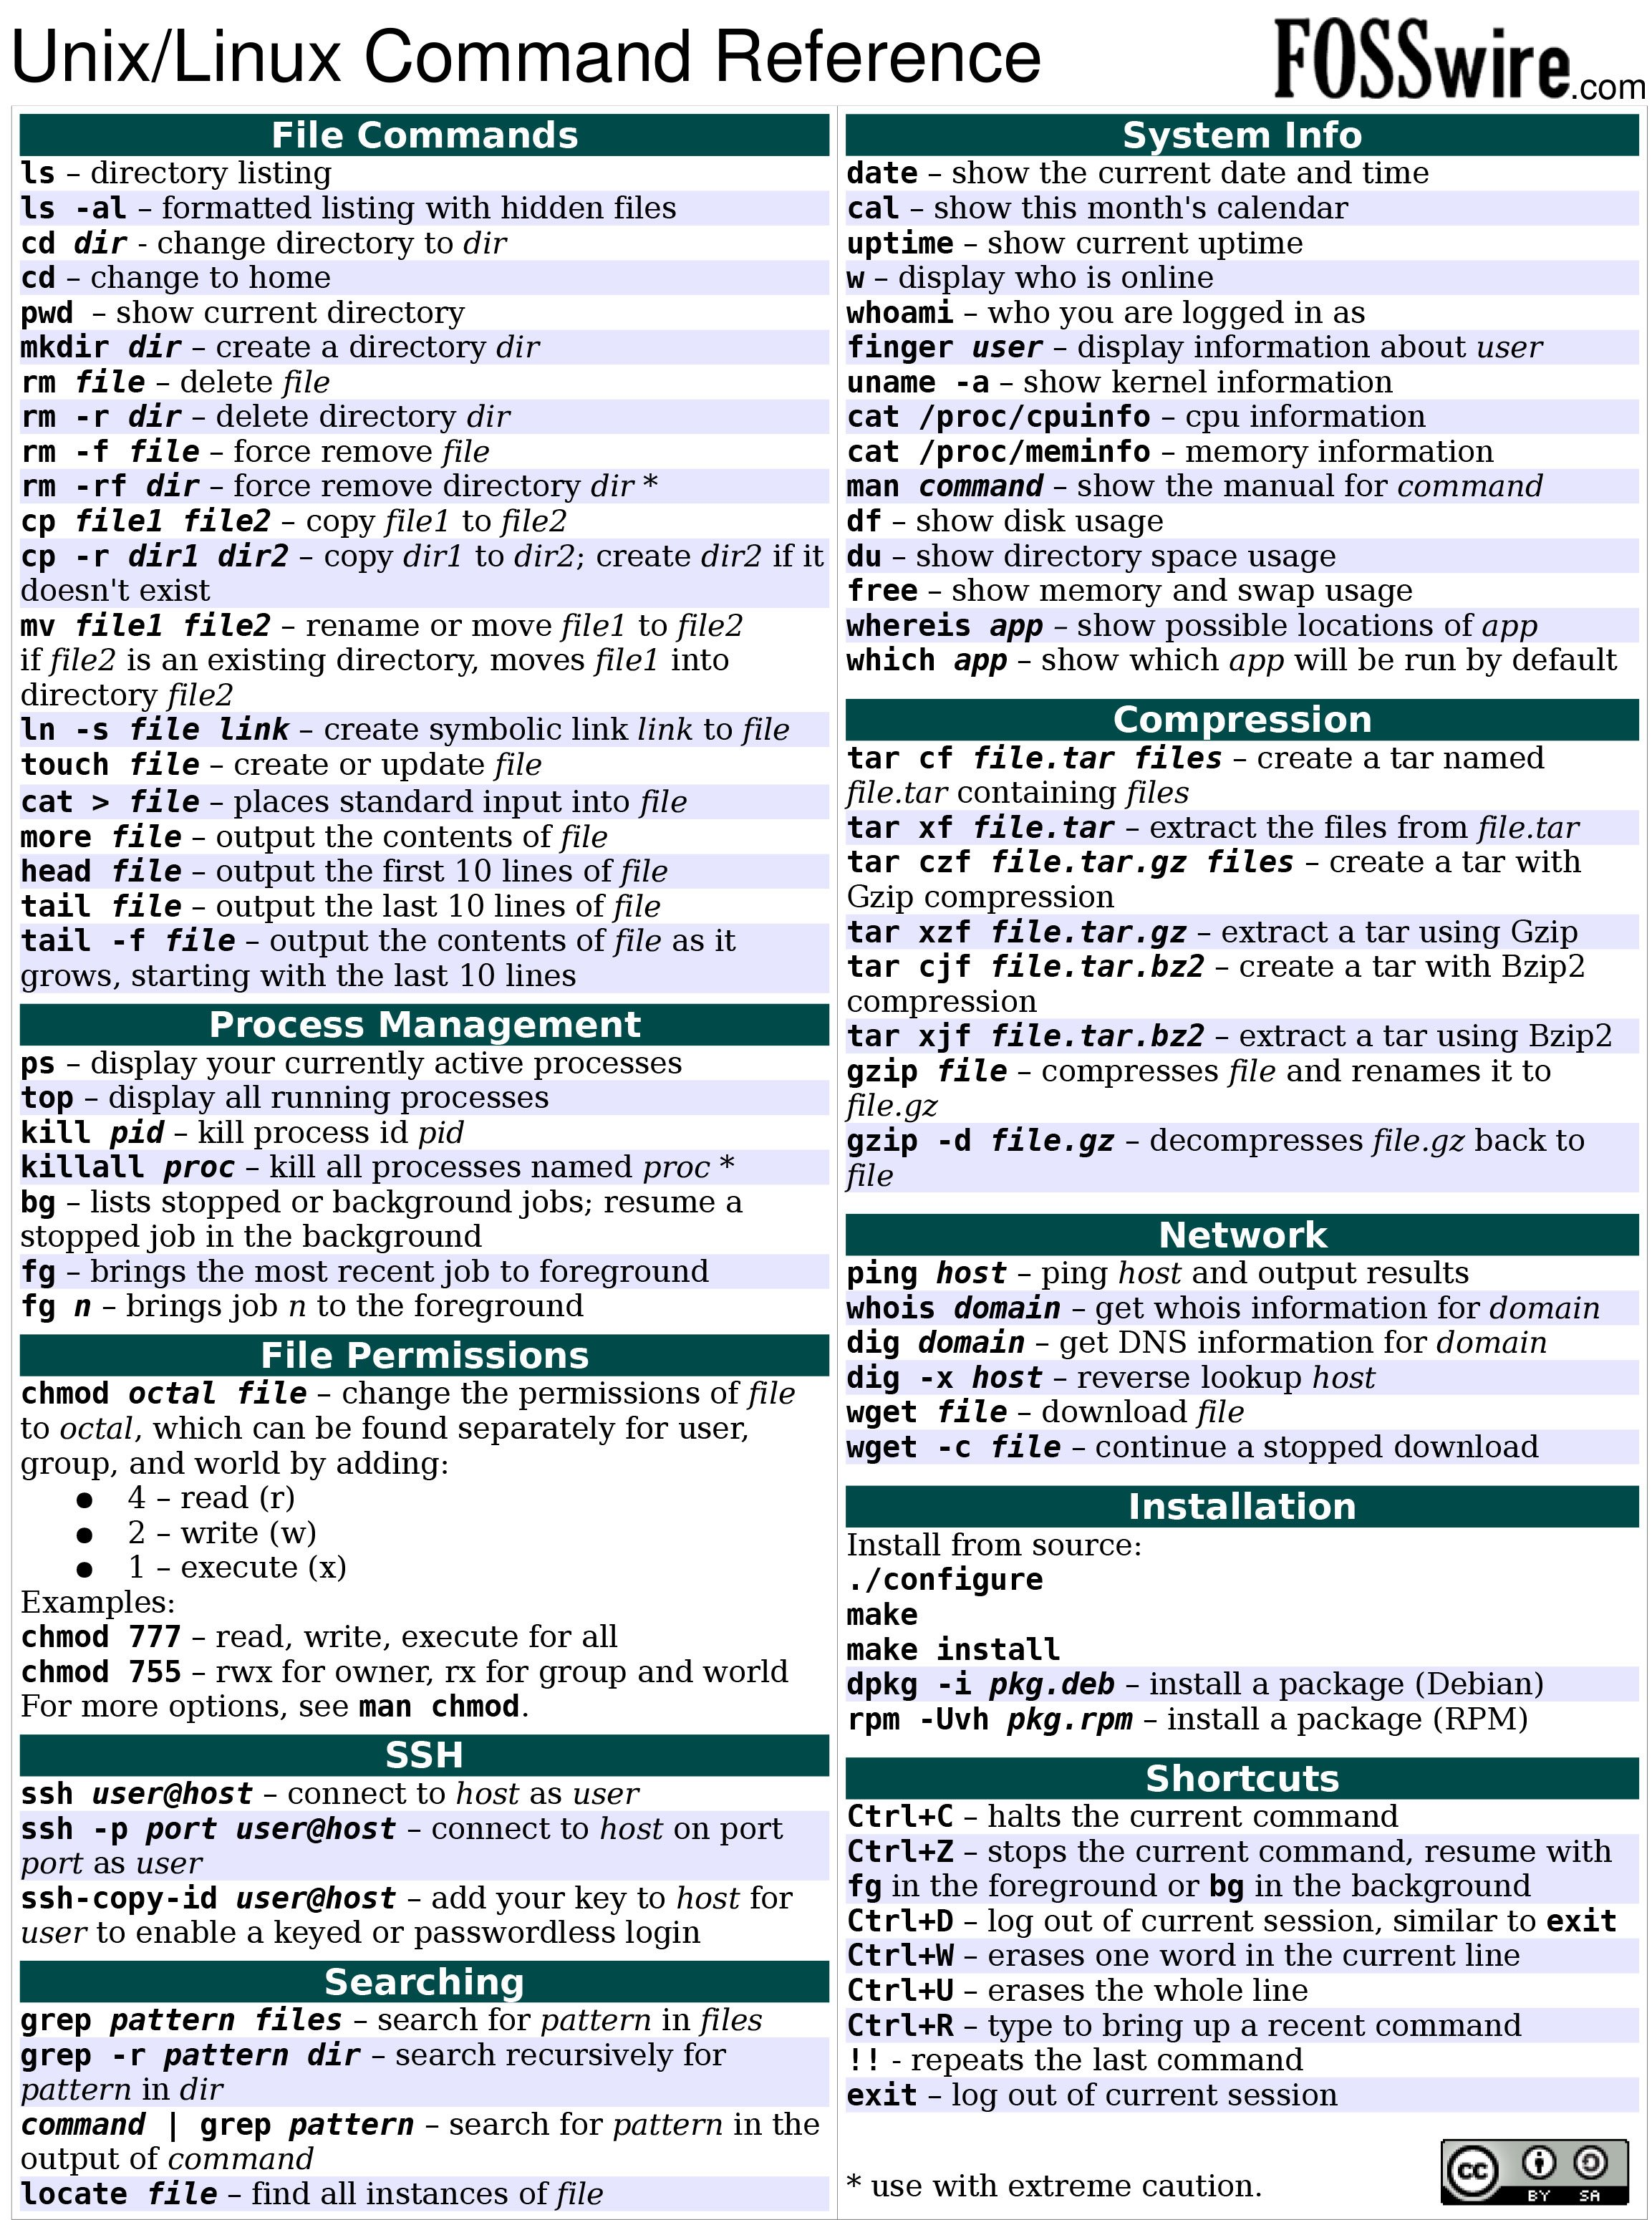 10,Linux,Unix,Command,Cheat,Sheet,02